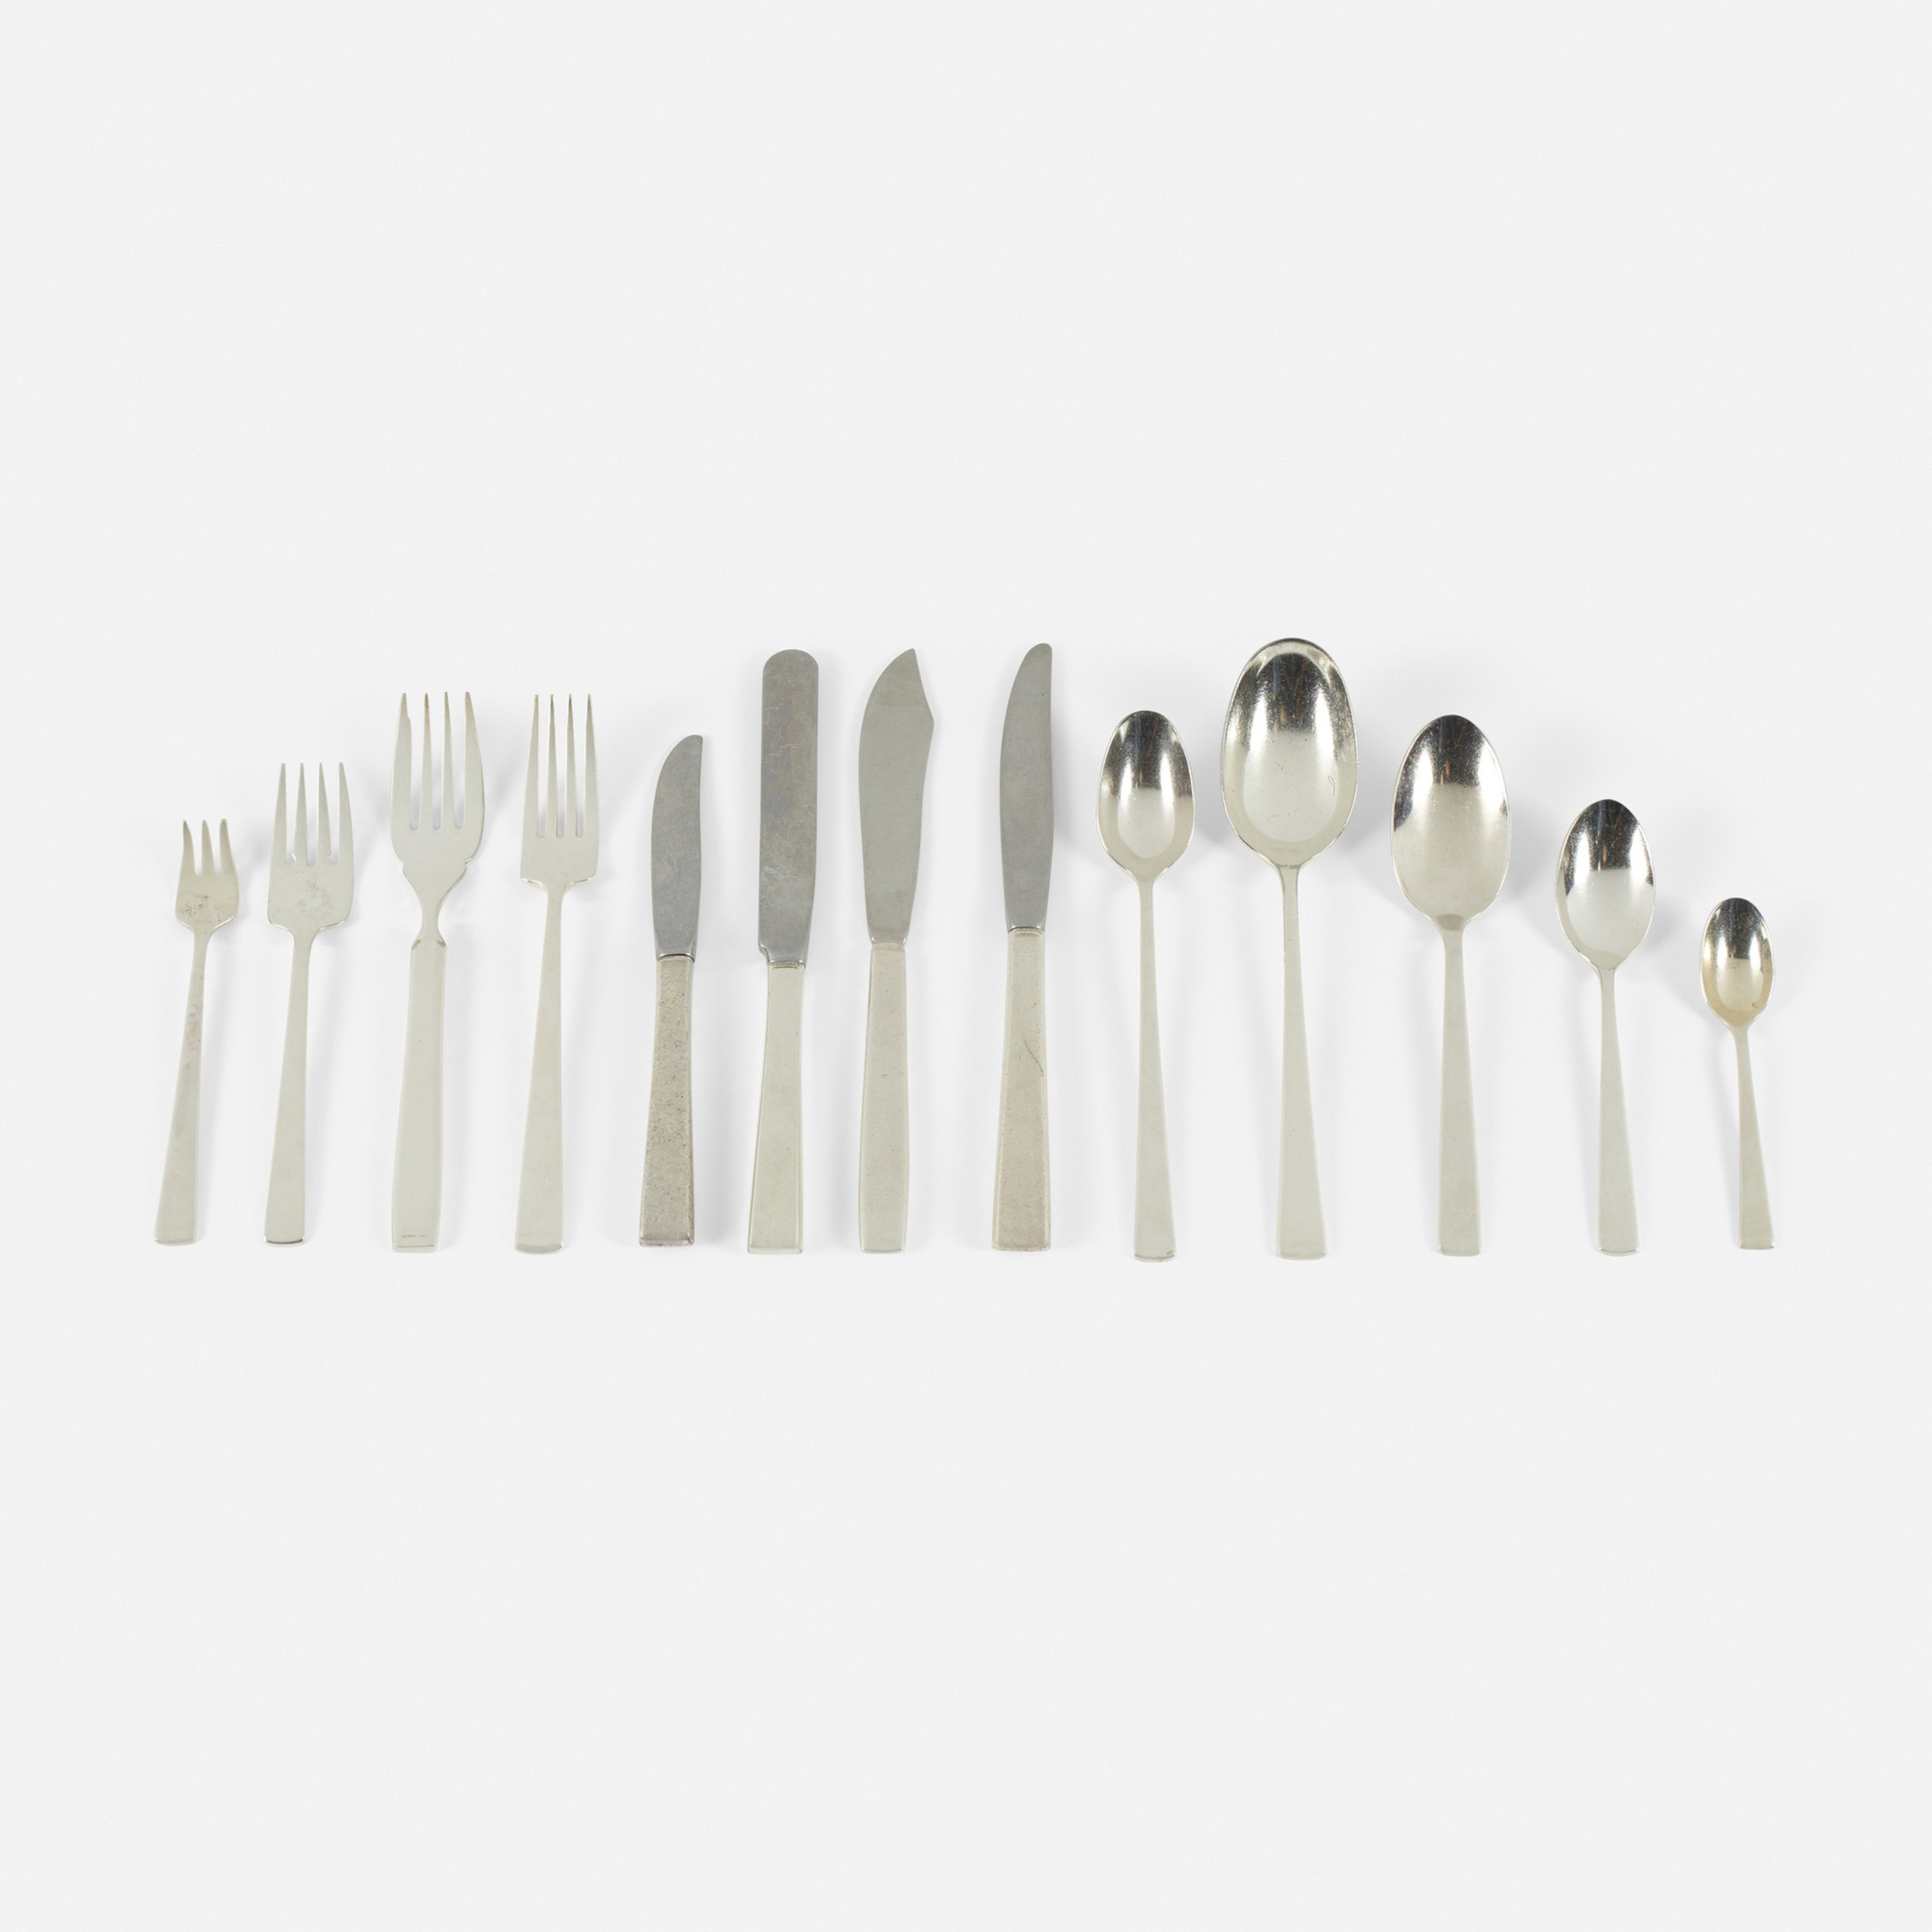 624: Garth and Ada Louise Huxtable / Four Seasons flatware, single service (1 of 1)